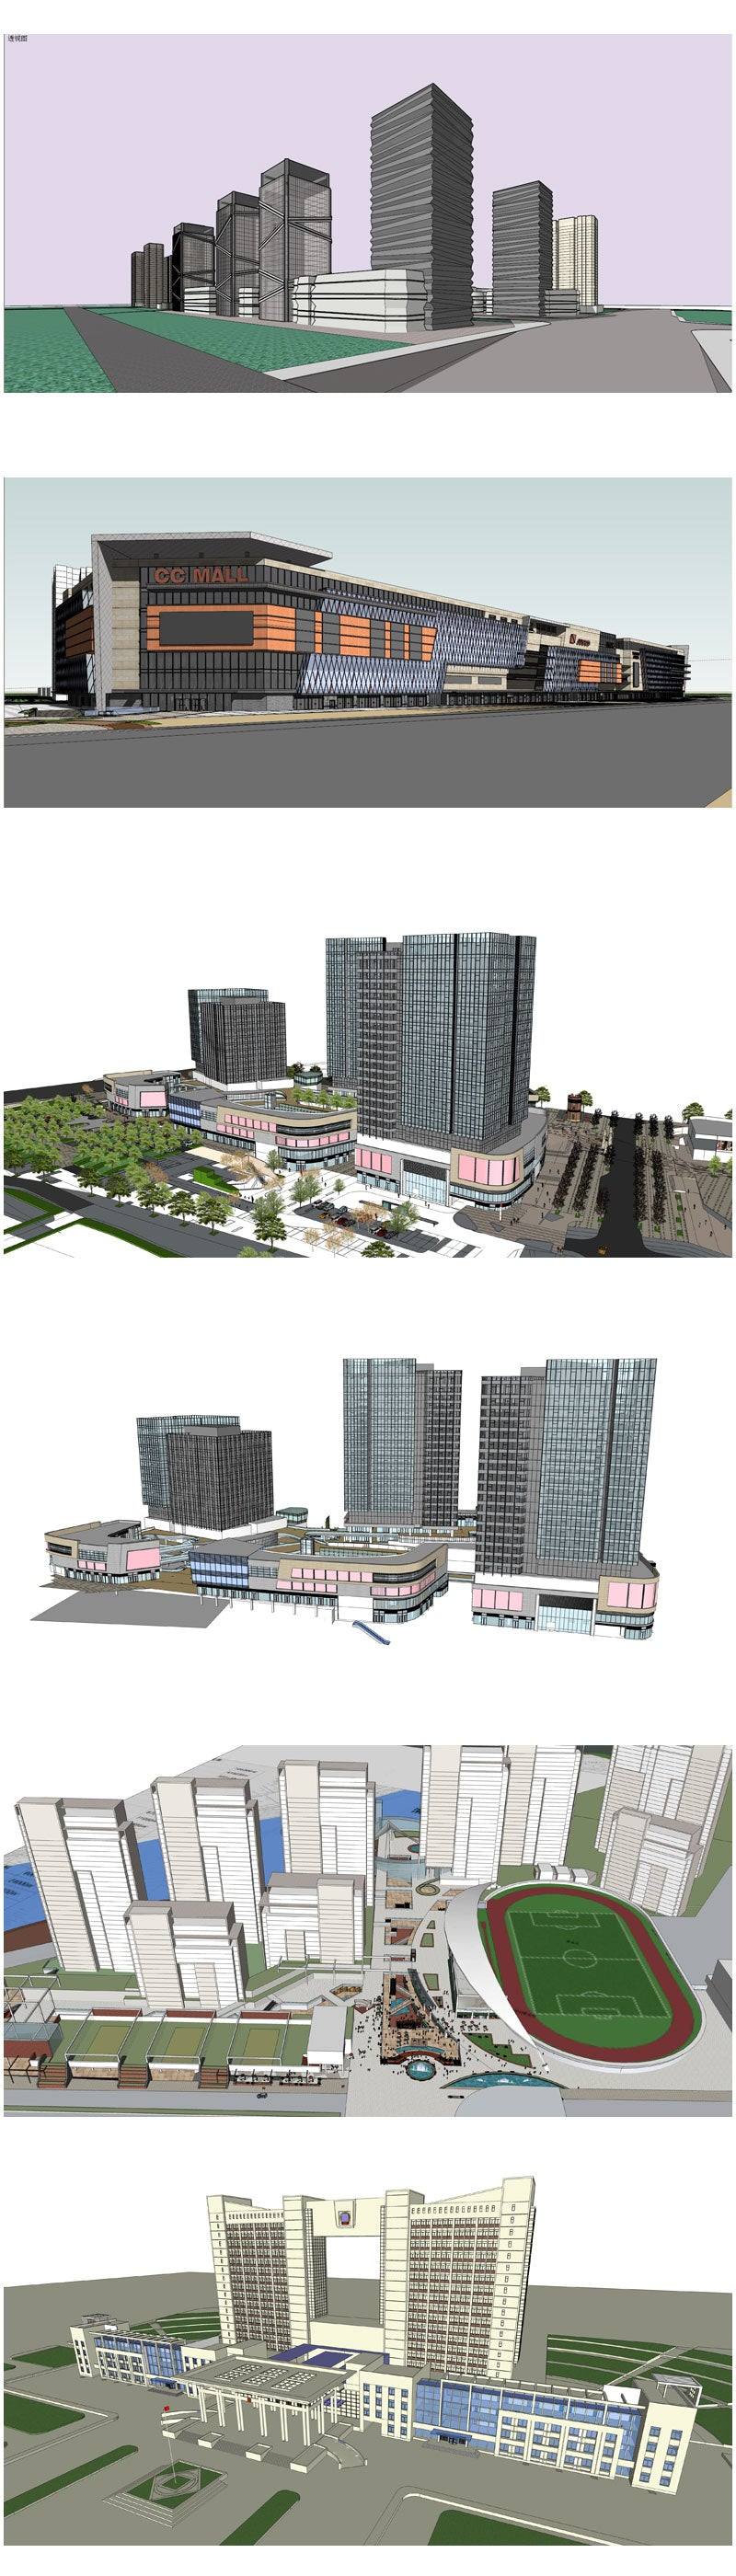 ★Best 20 Types of City,Residential Building Sketchup 3D Models Collection(Recommanded!!)